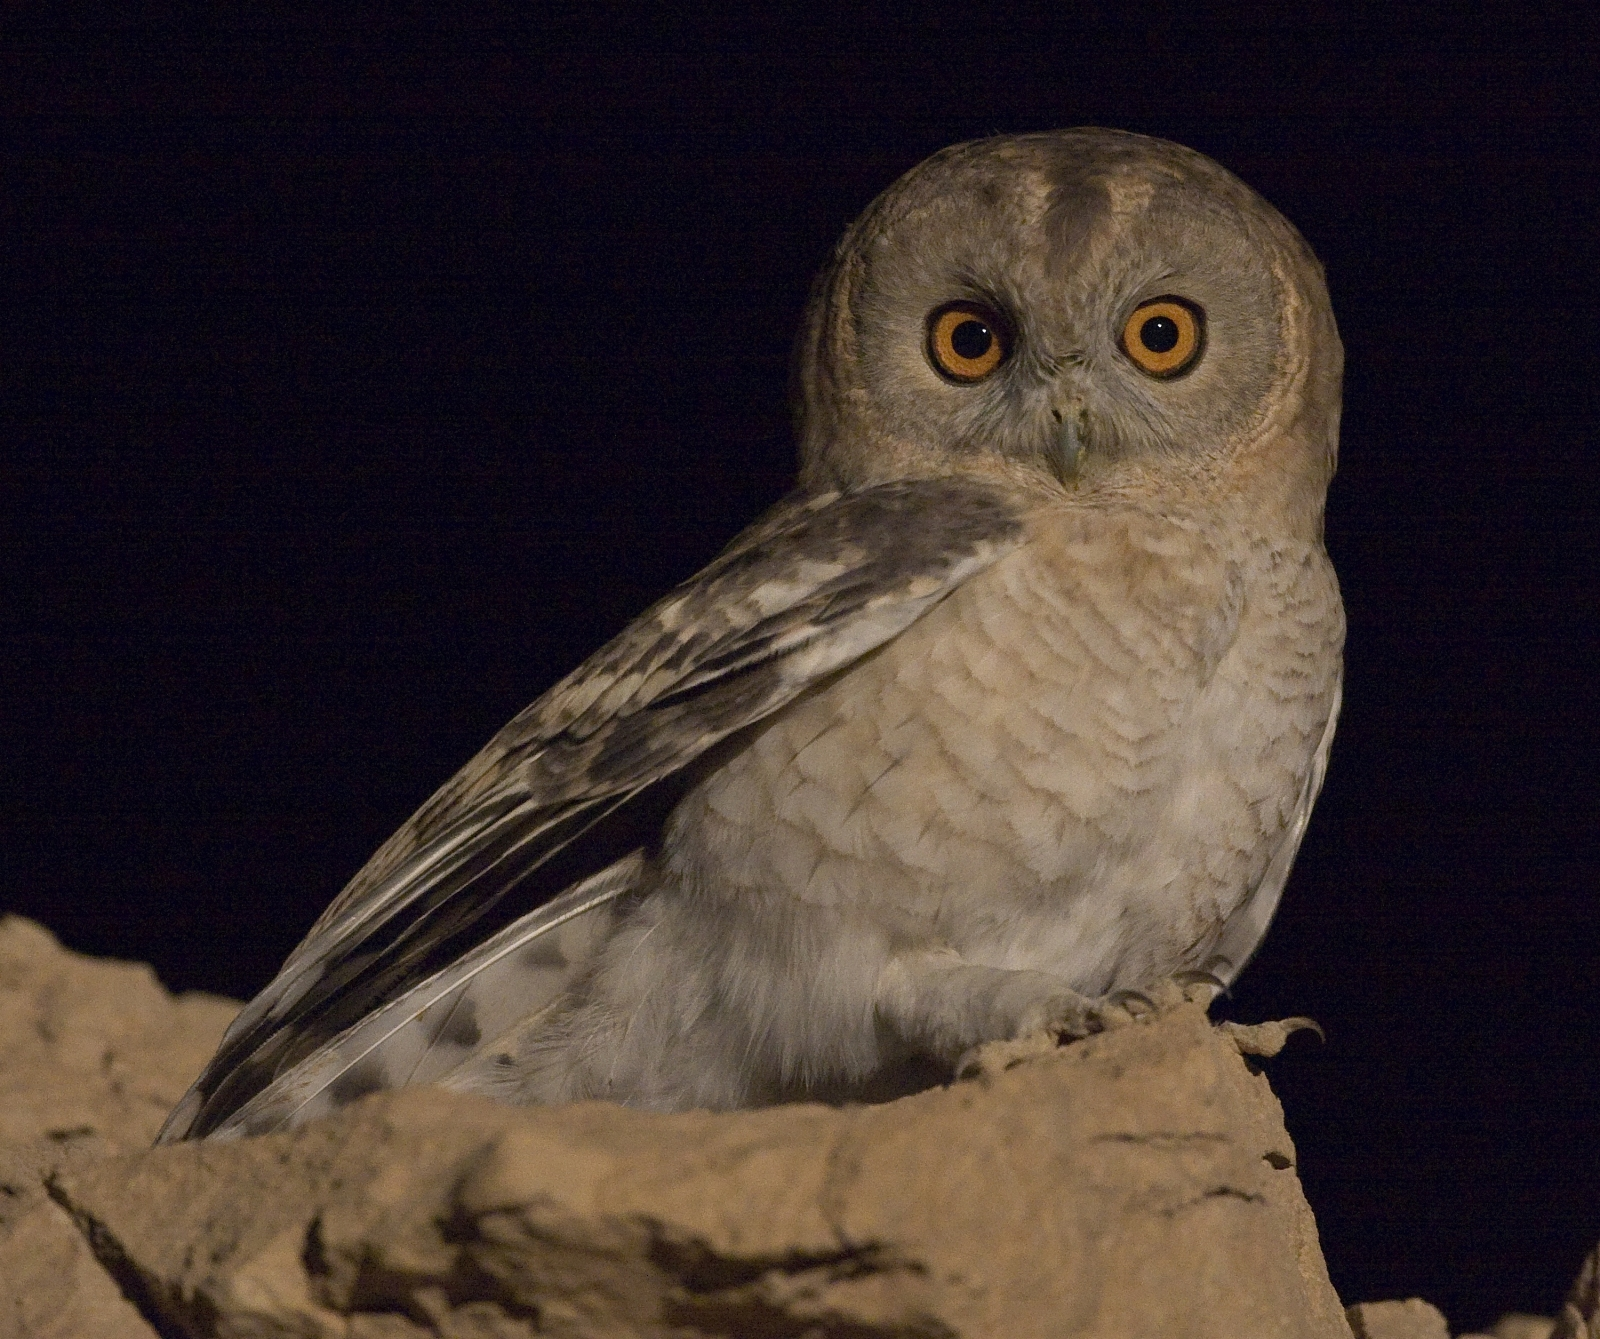 The Desert Tawny Owl (Strix aluco) is a different species from Hume's Owl